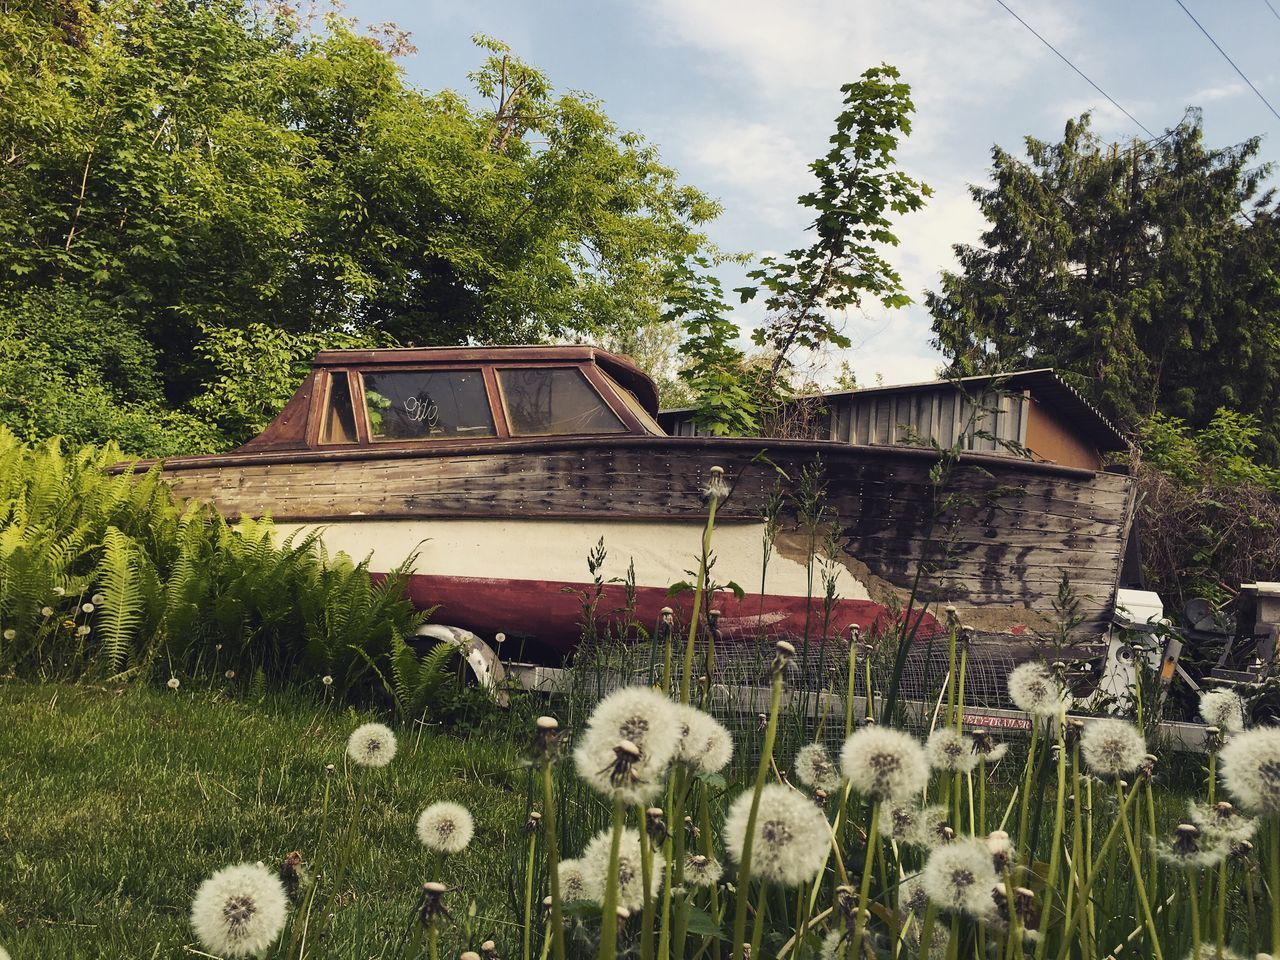 Boat Grass The Great Outdoors - 2016 EyeEm Awards